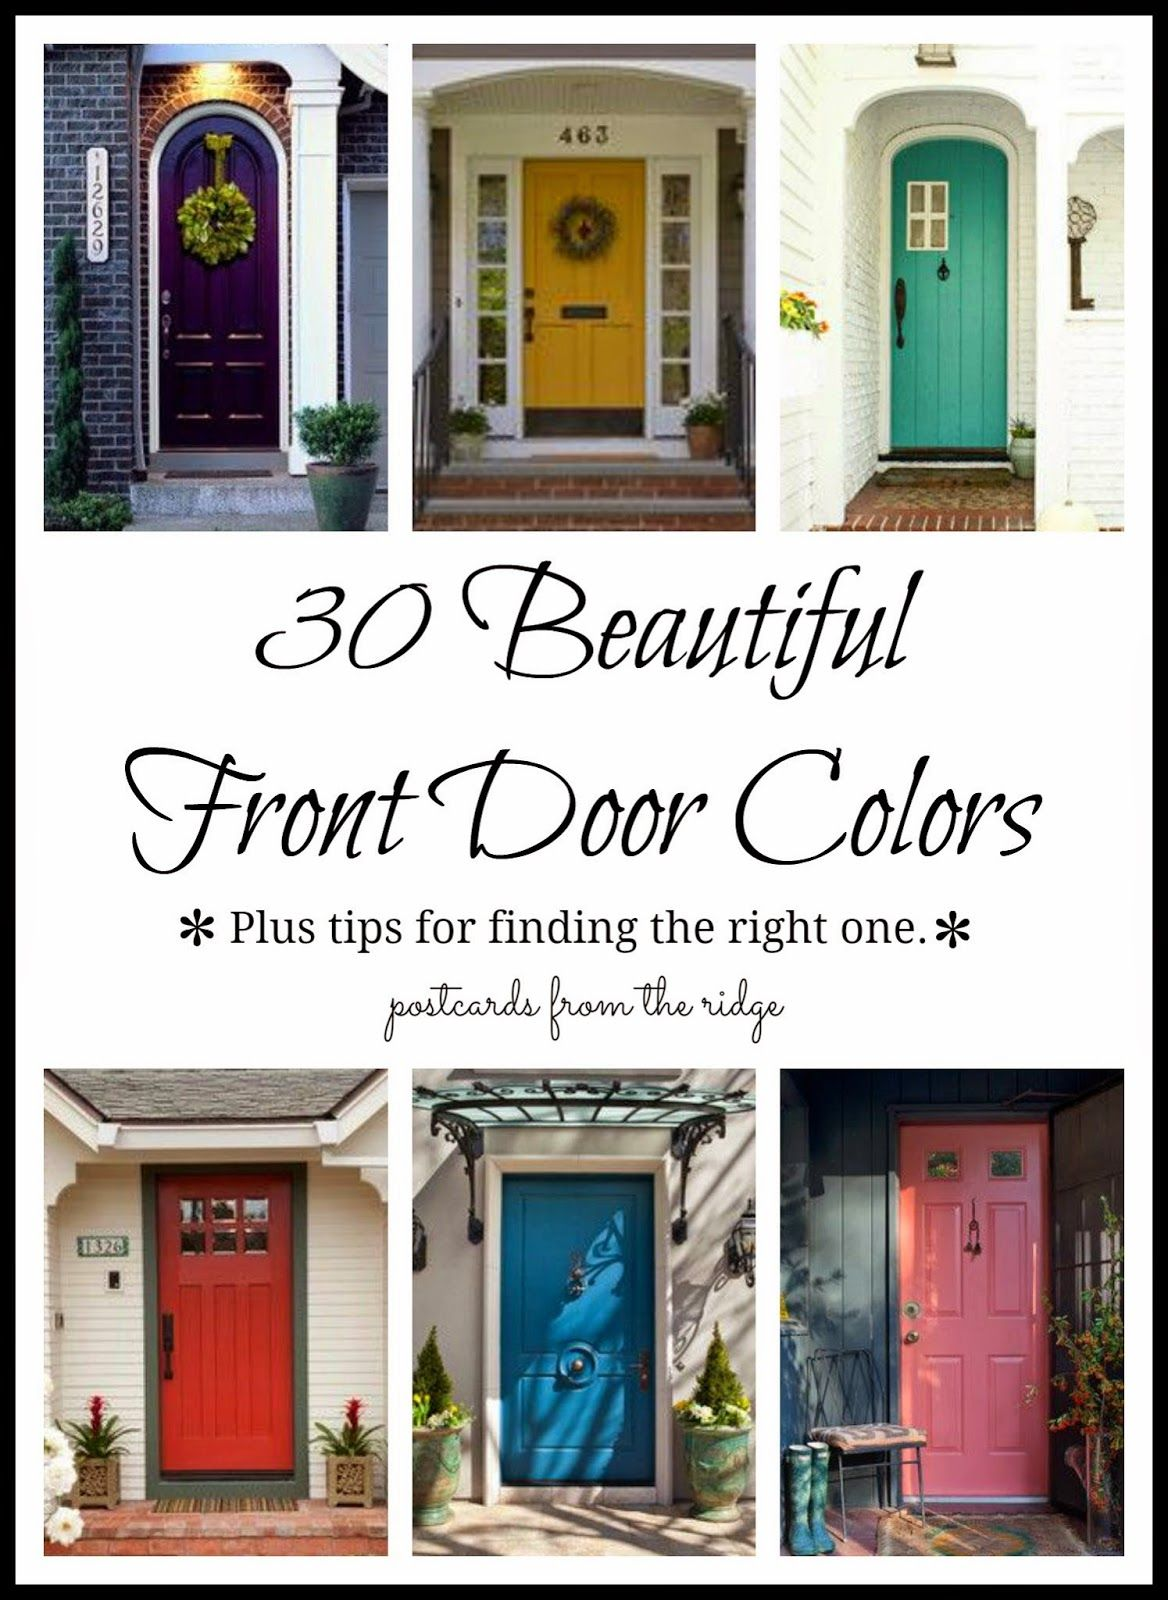 colored front doors on pinterest. Black Bedroom Furniture Sets. Home Design Ideas